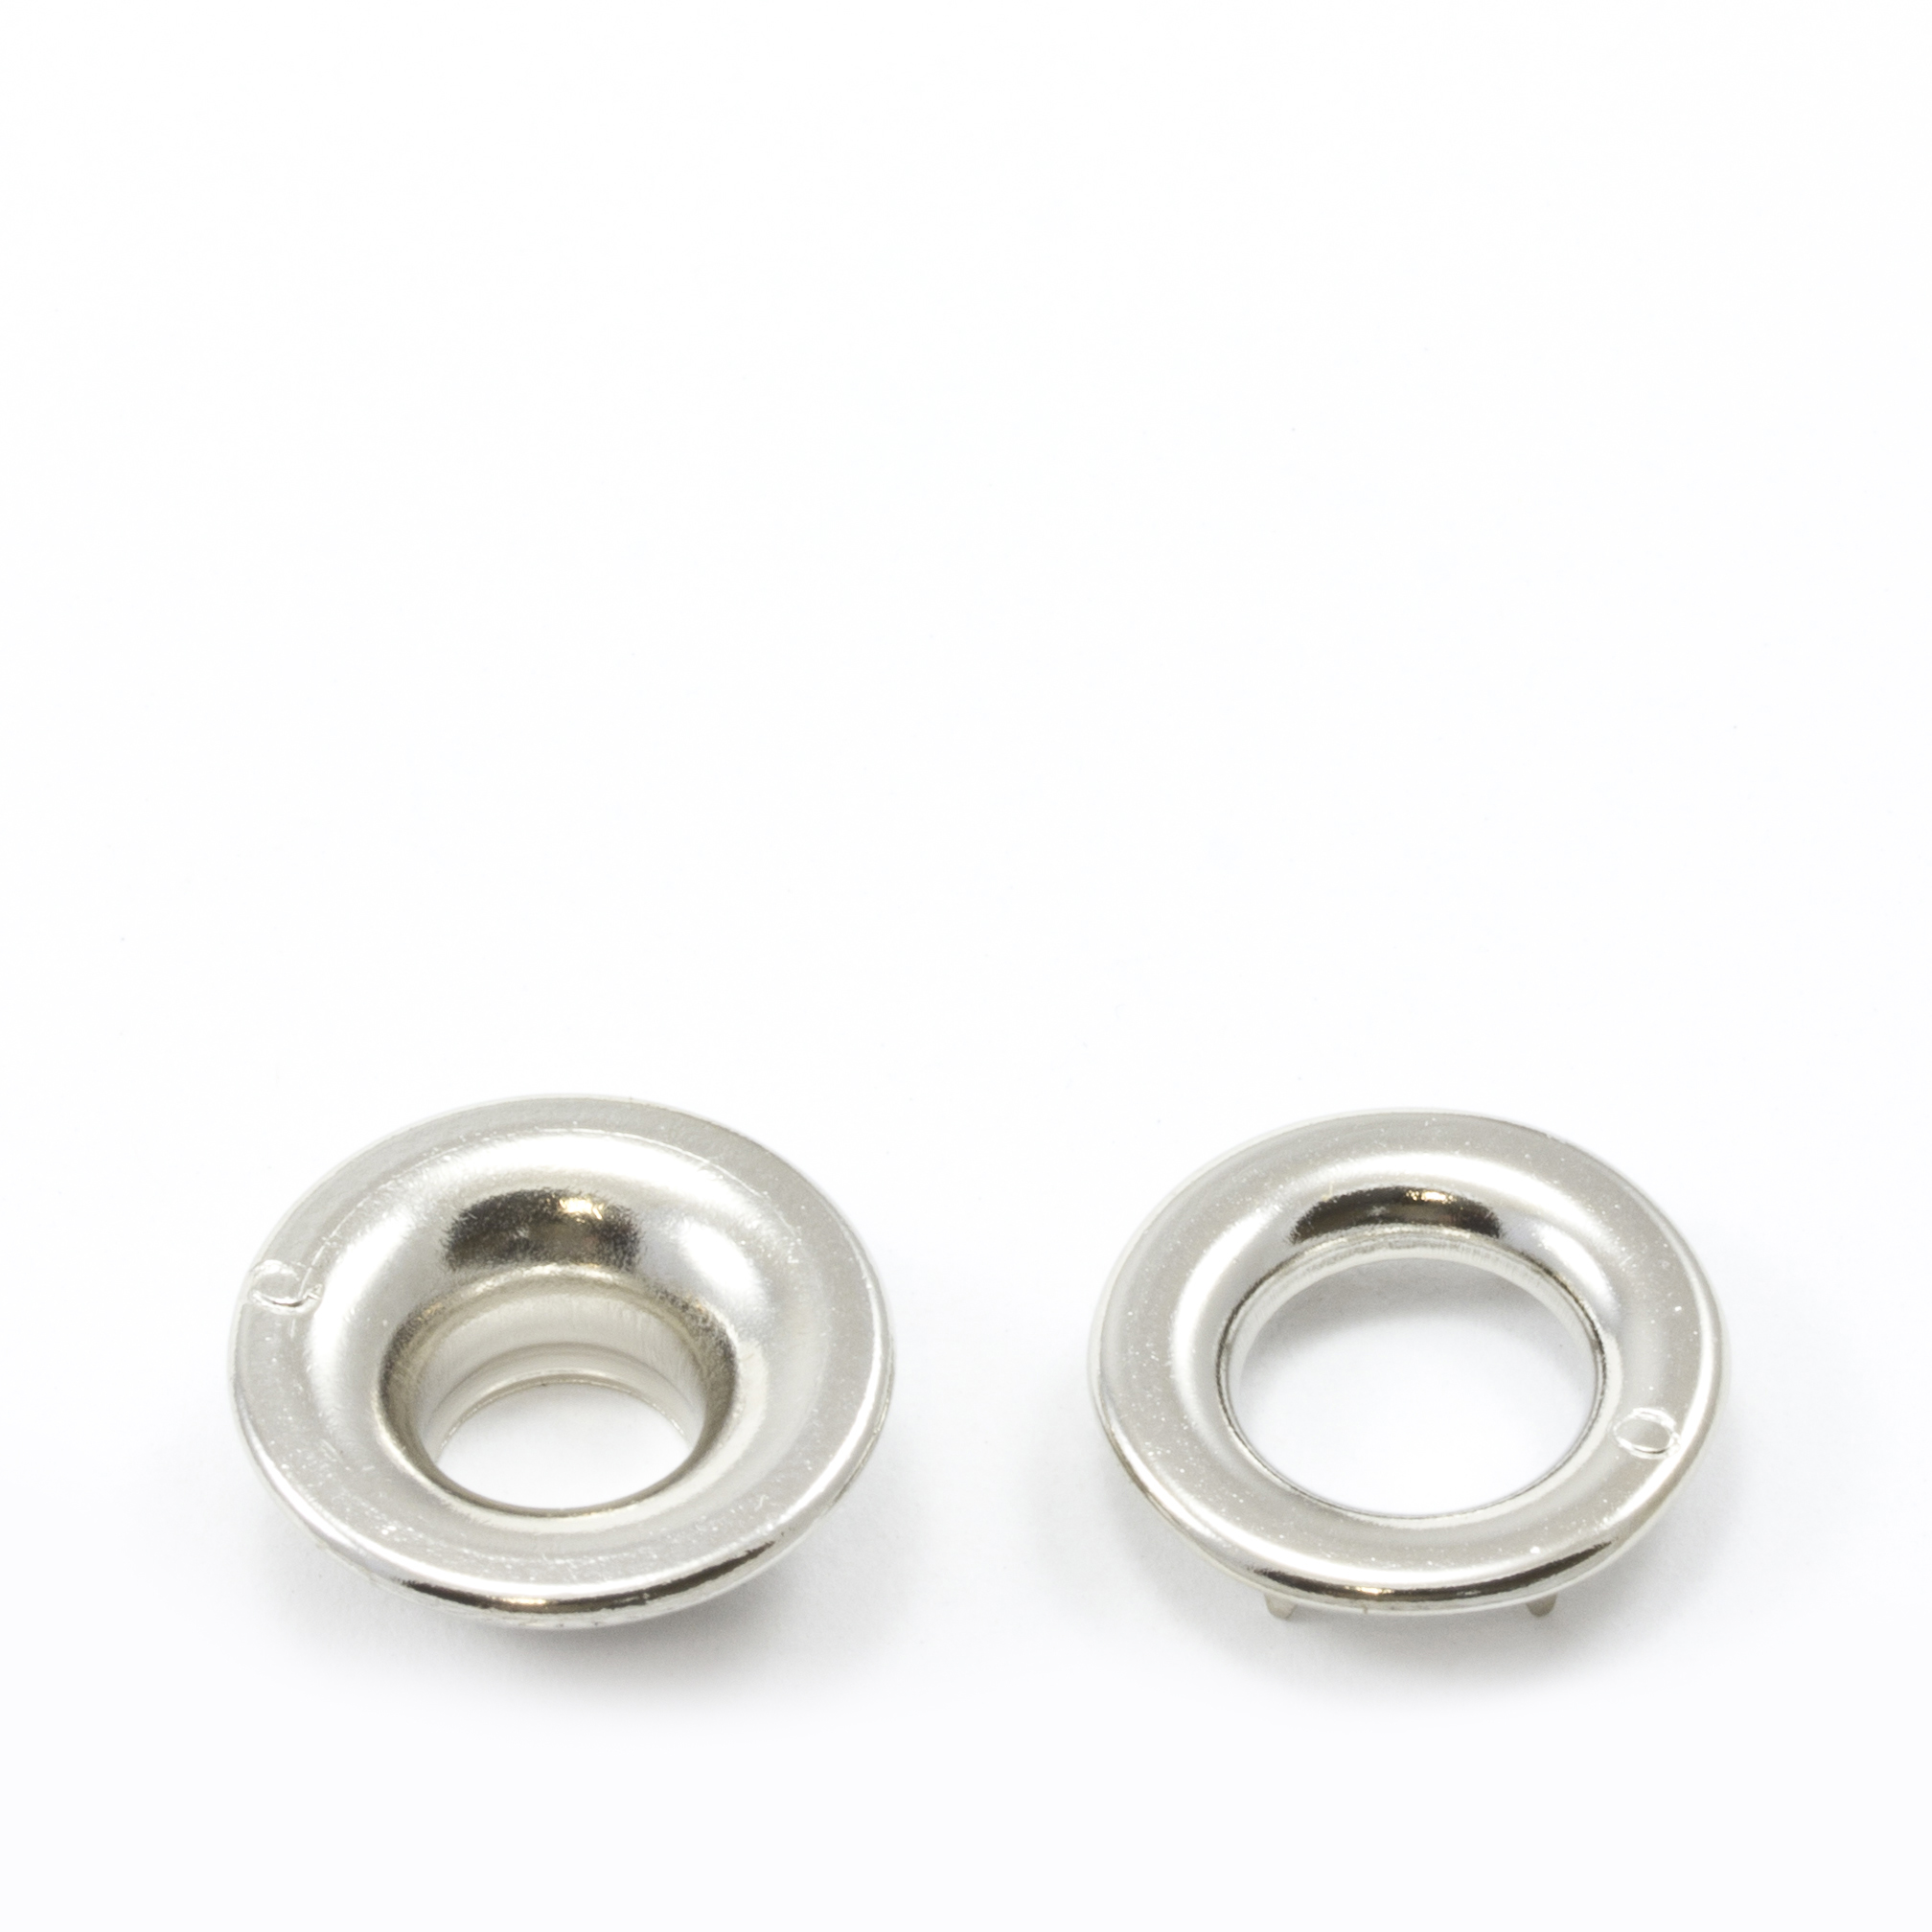 Thumbnail Rolled Rim Grommet with Spur Washer #0 Brass Nickel Plated 9/32 1